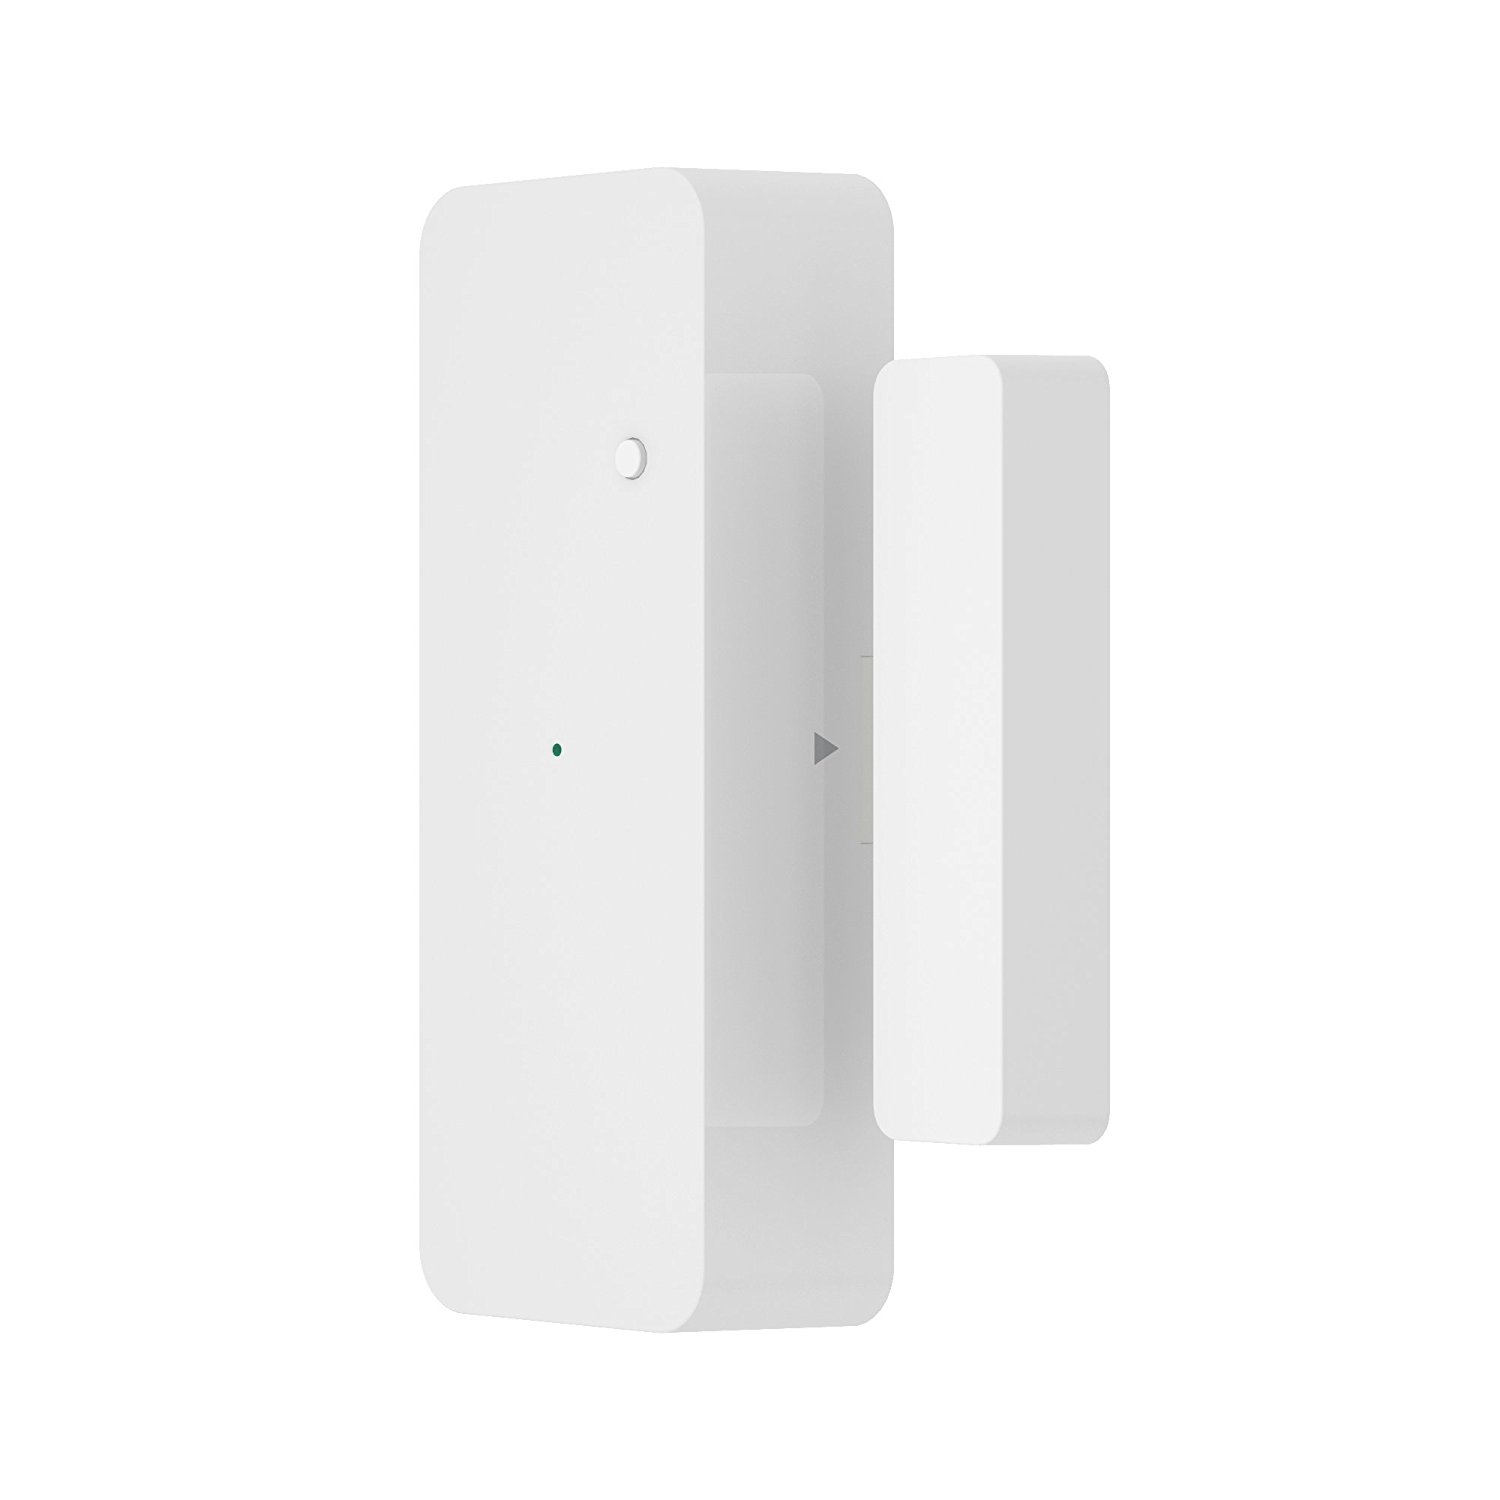 INSTEON 2843-222 Wireless Open Close Sensor